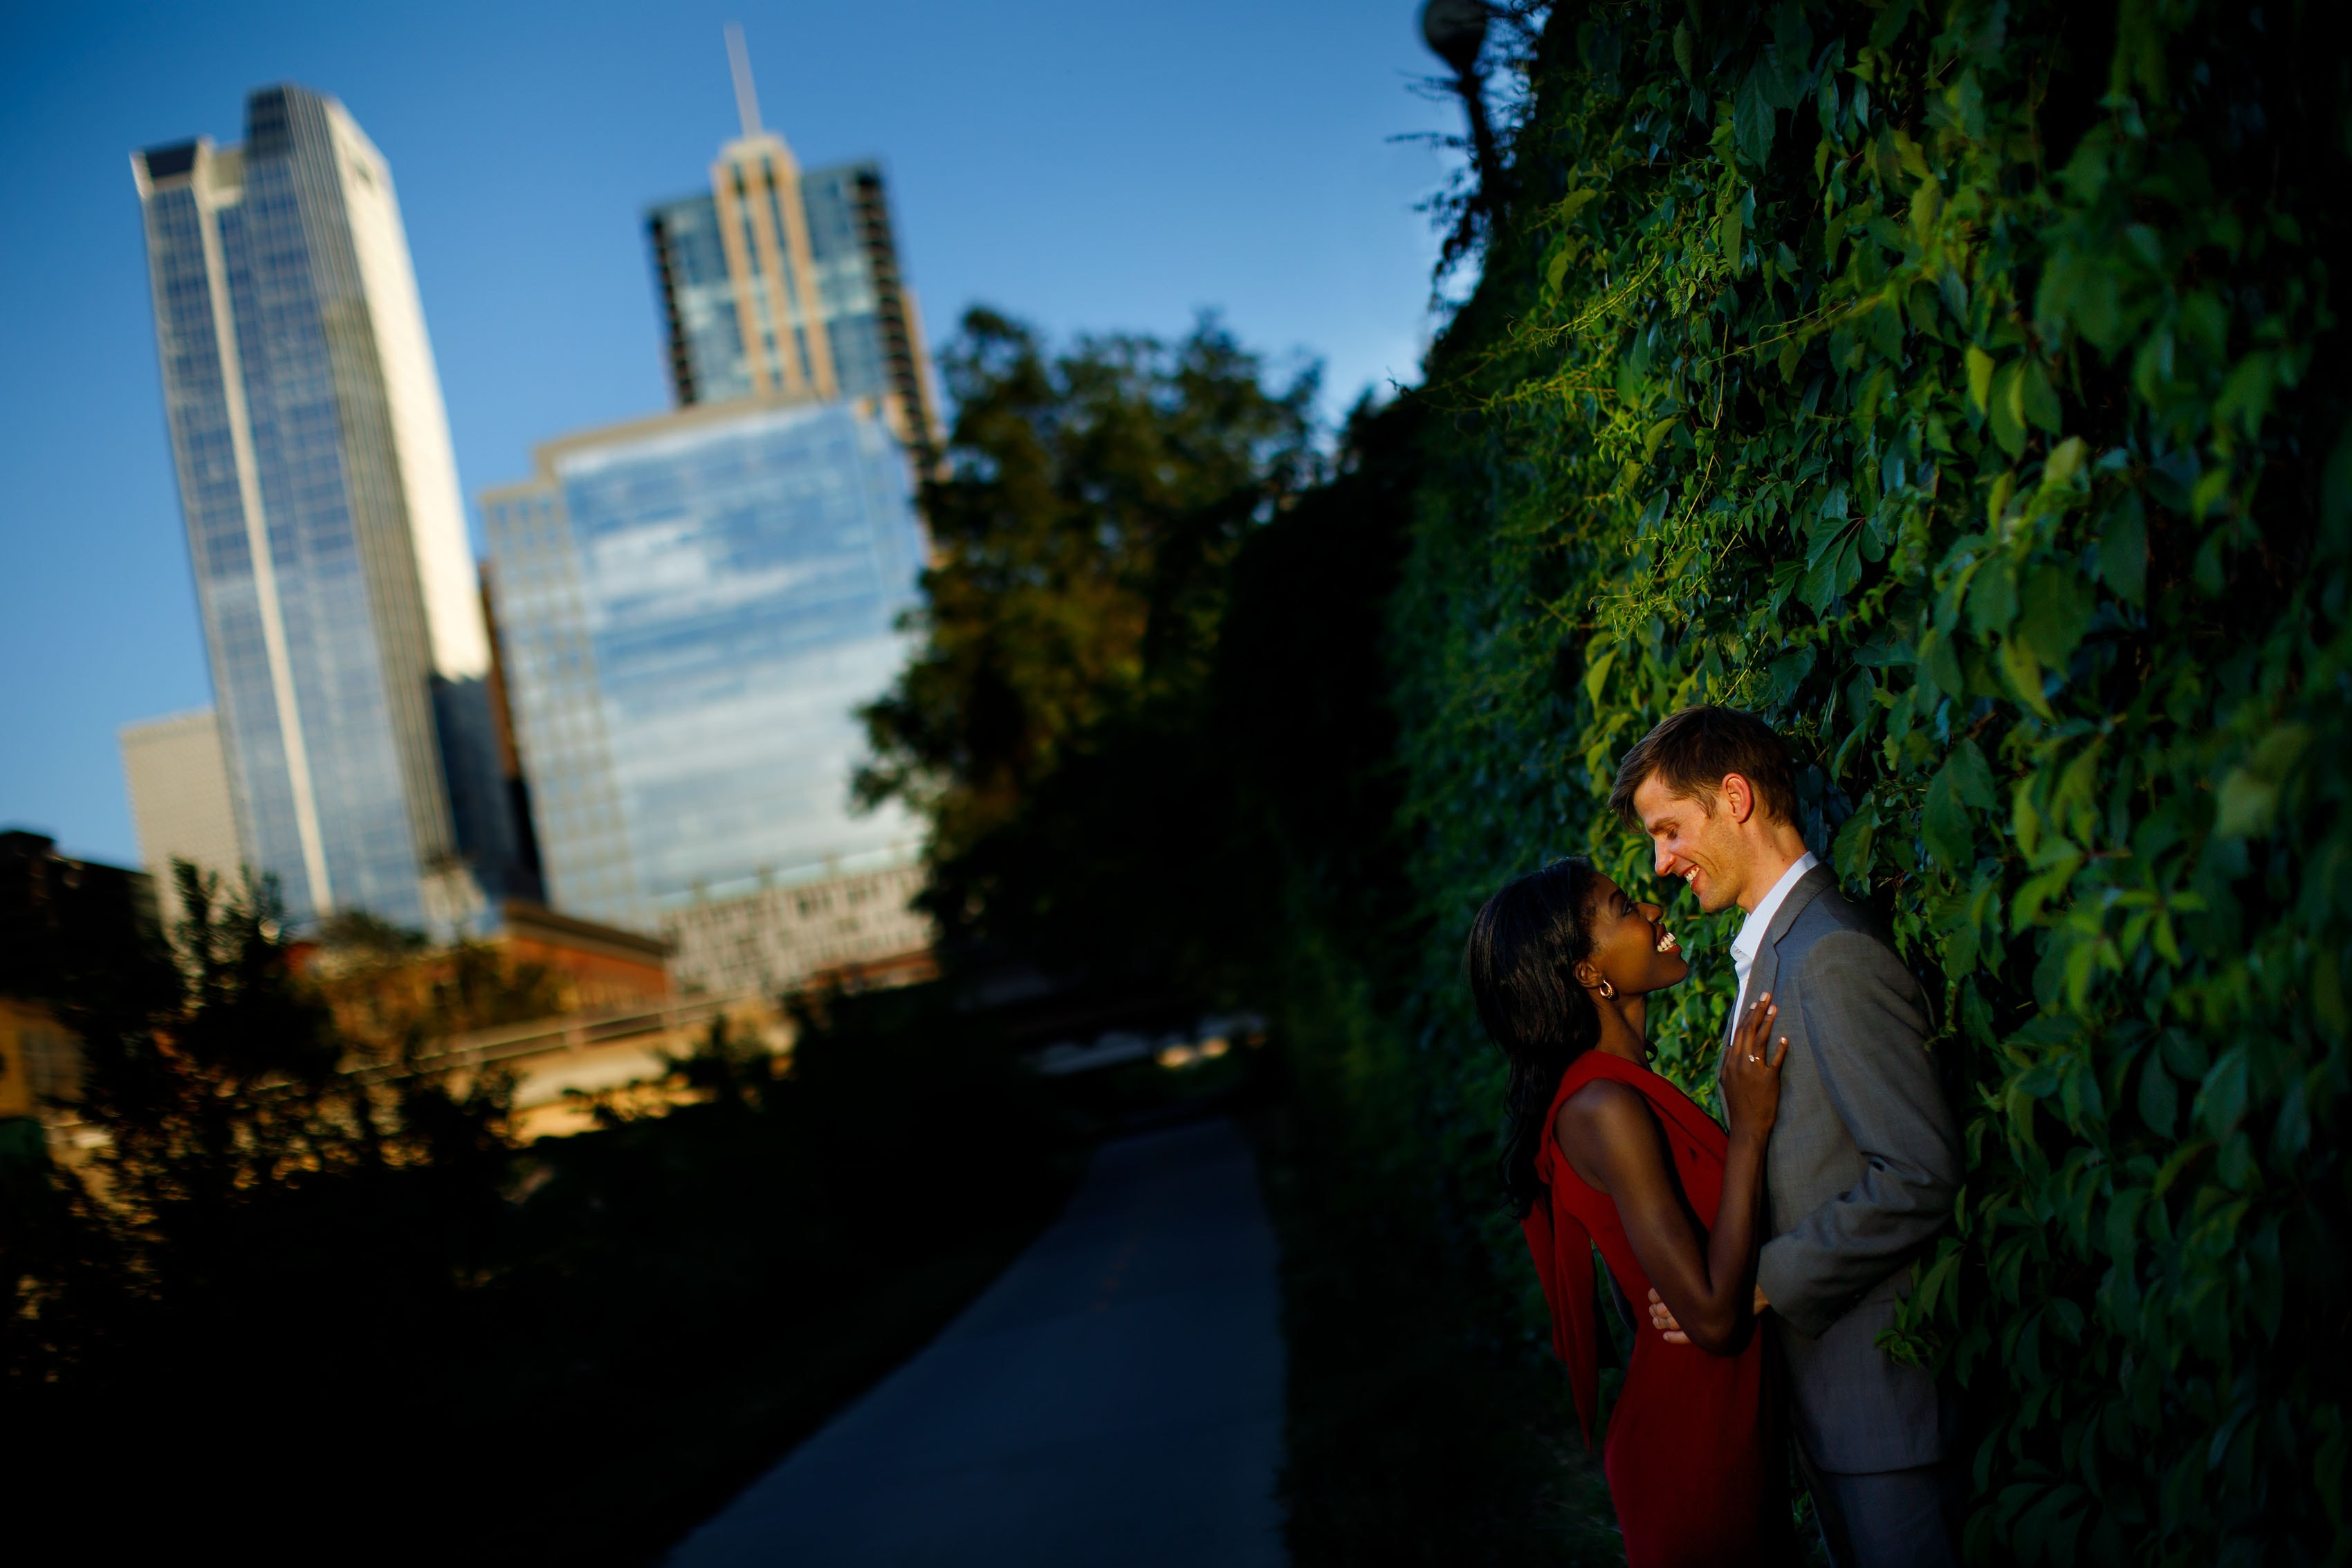 A couple embrace on the Ivy wall along the Cherry Creek path in downtown Denver during their engagement photos